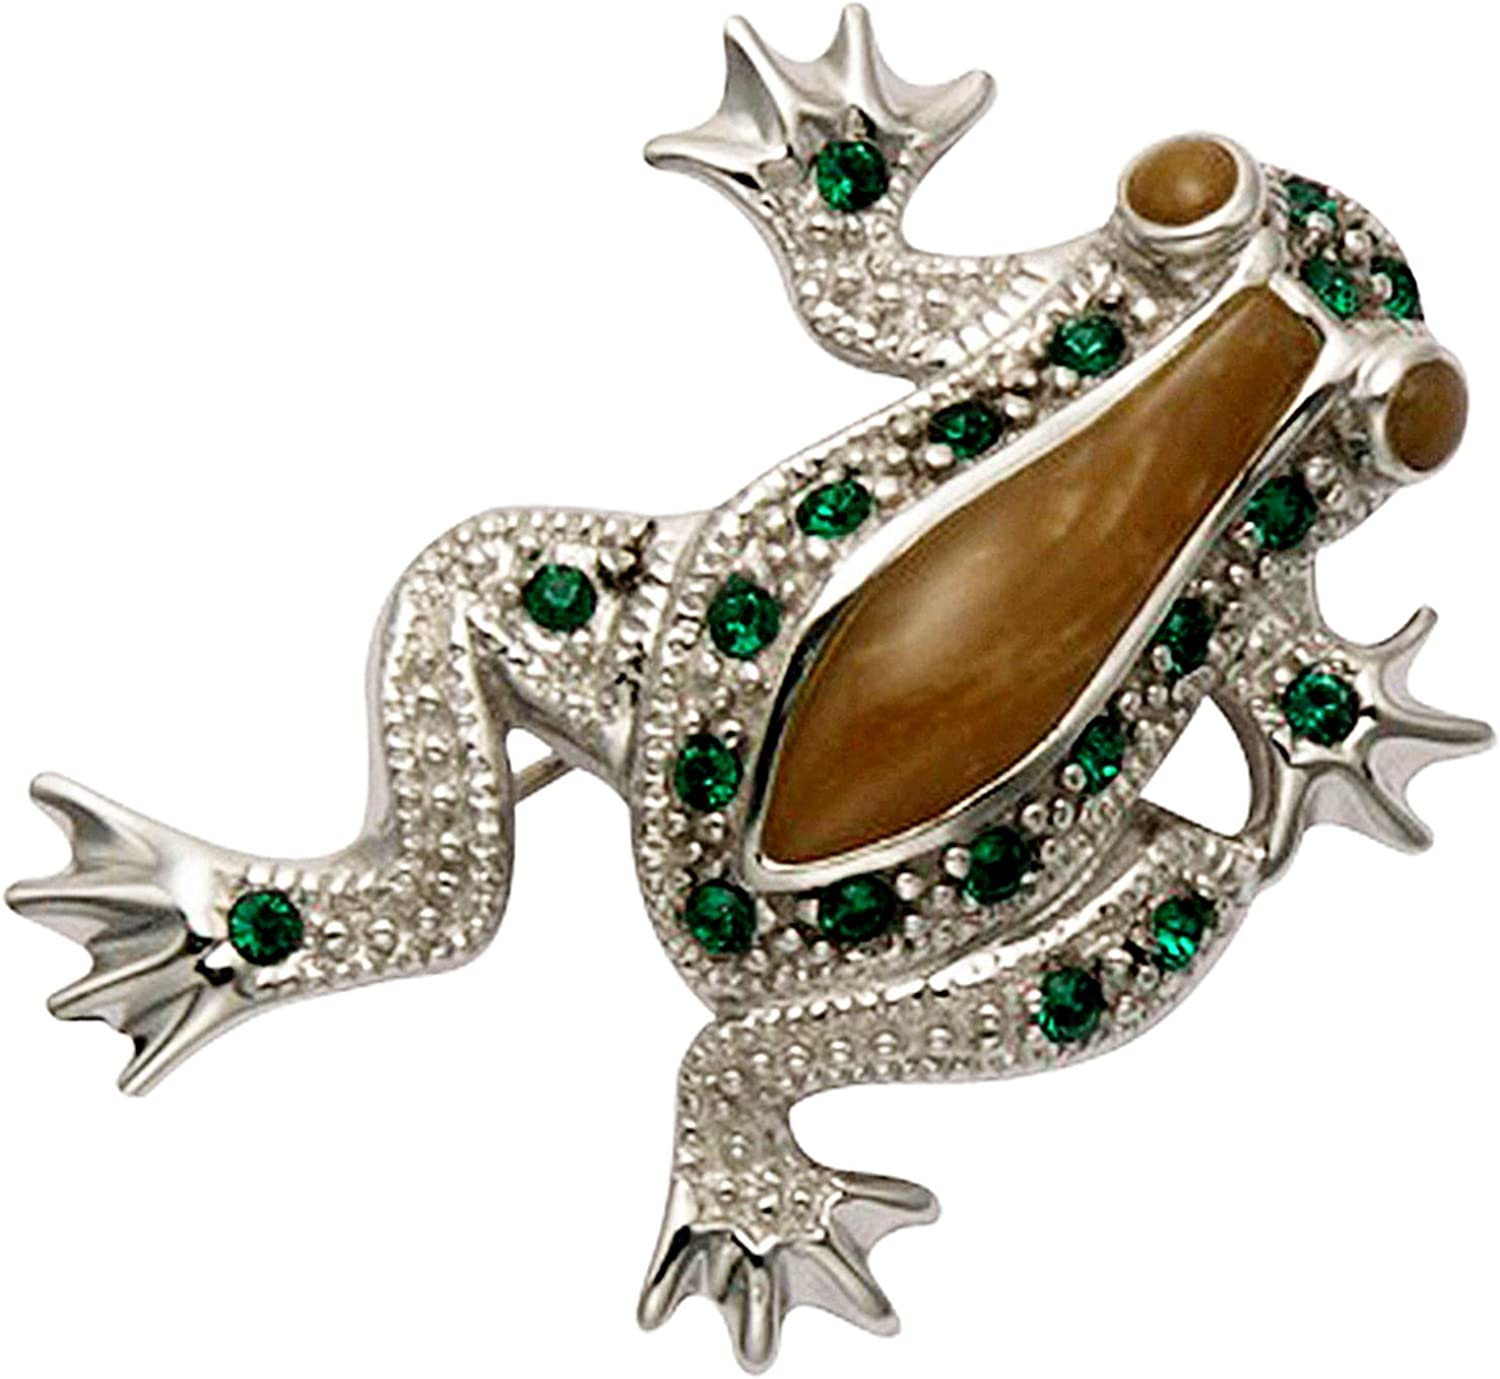 Wildthings Ltd. Sterling Silver Enamel Inlaid Climbing Tree Frog Pin w/Green Crystal Stones 71JxDYa2UbLUL1500_